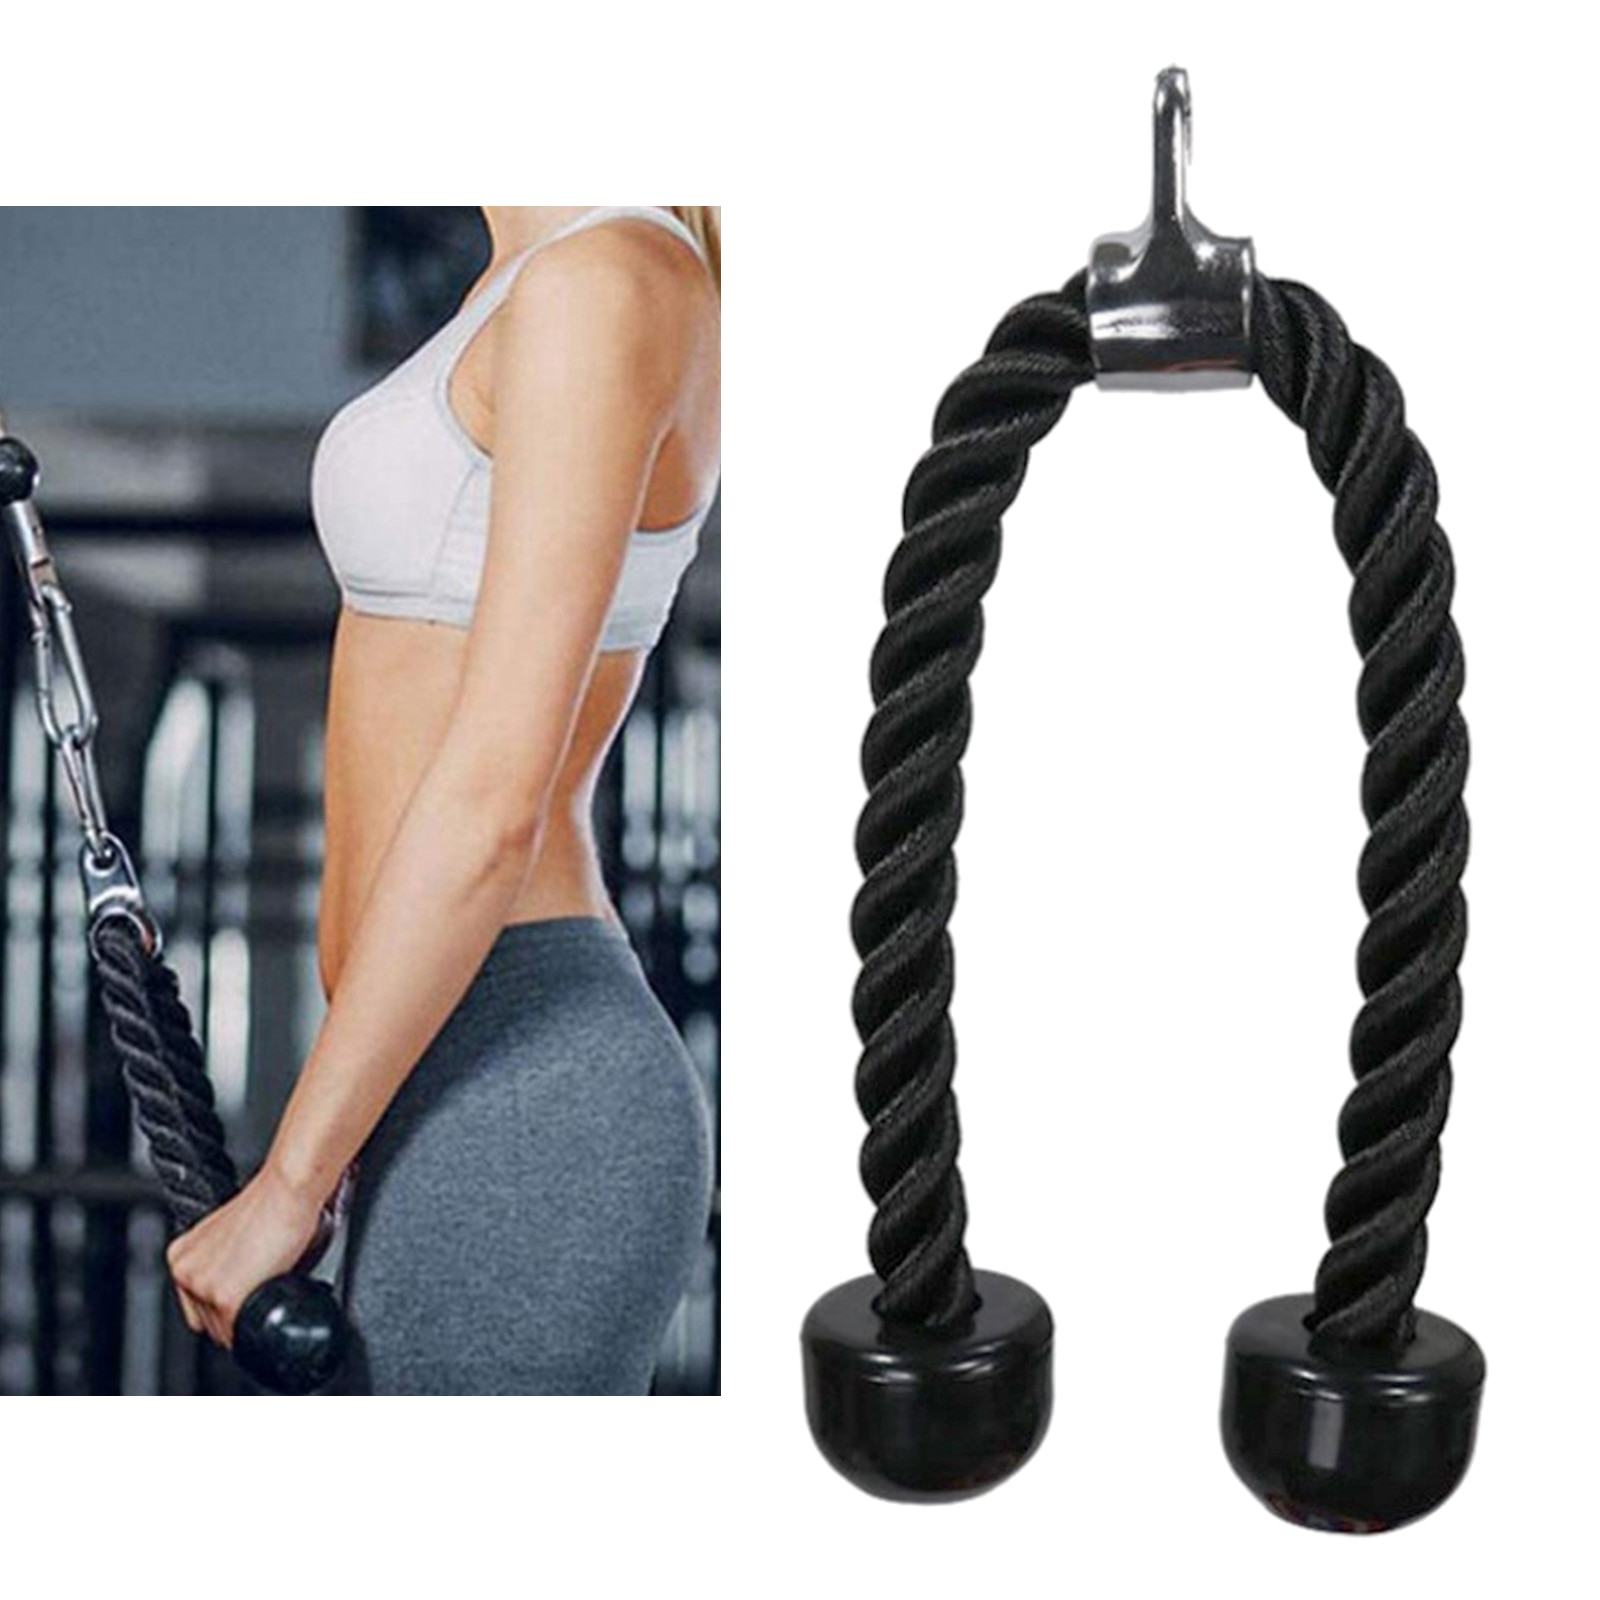 Triceps Rope Cable Machine Attachment Fitness Pulldown Pull Down Handle Comfort